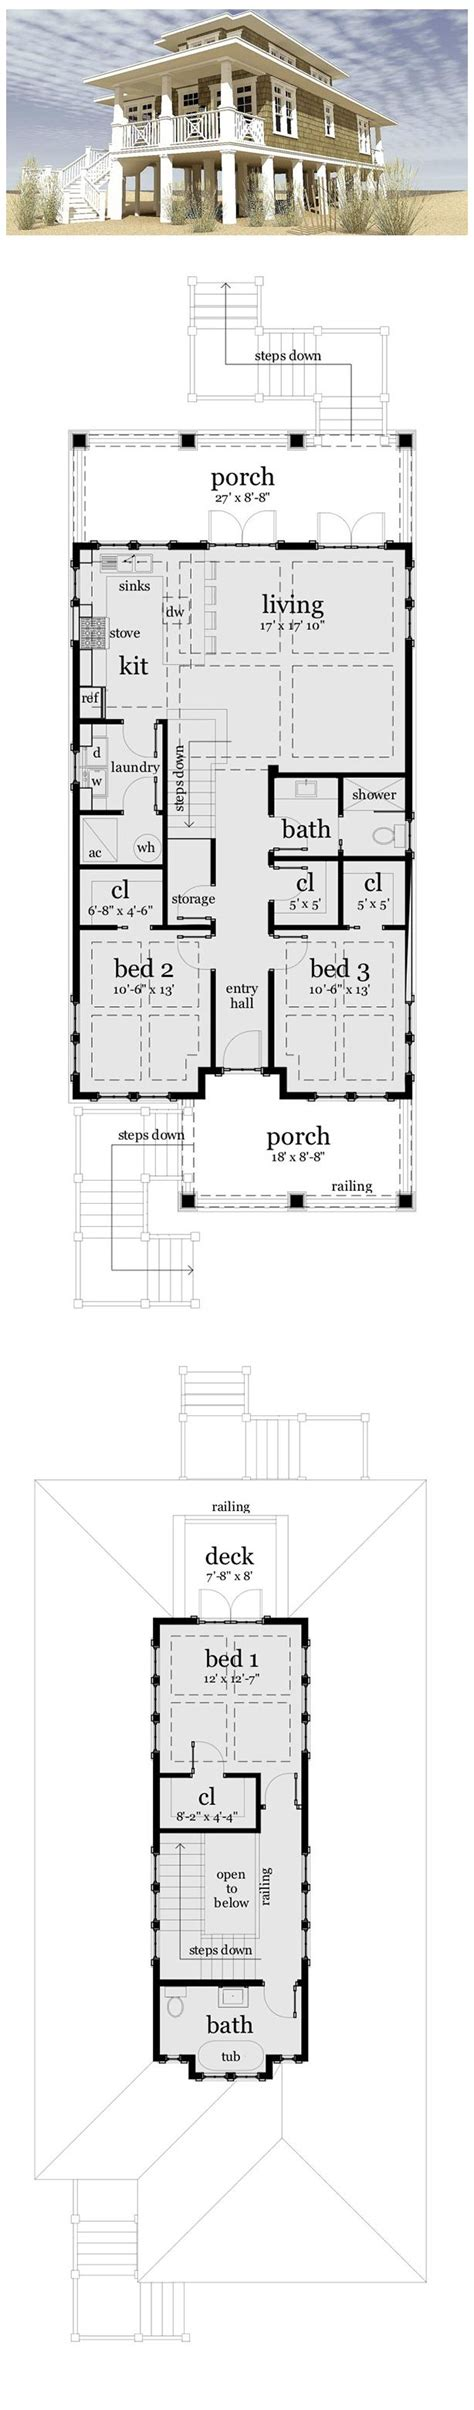 coastal living floor plans coastal living floor plans home design